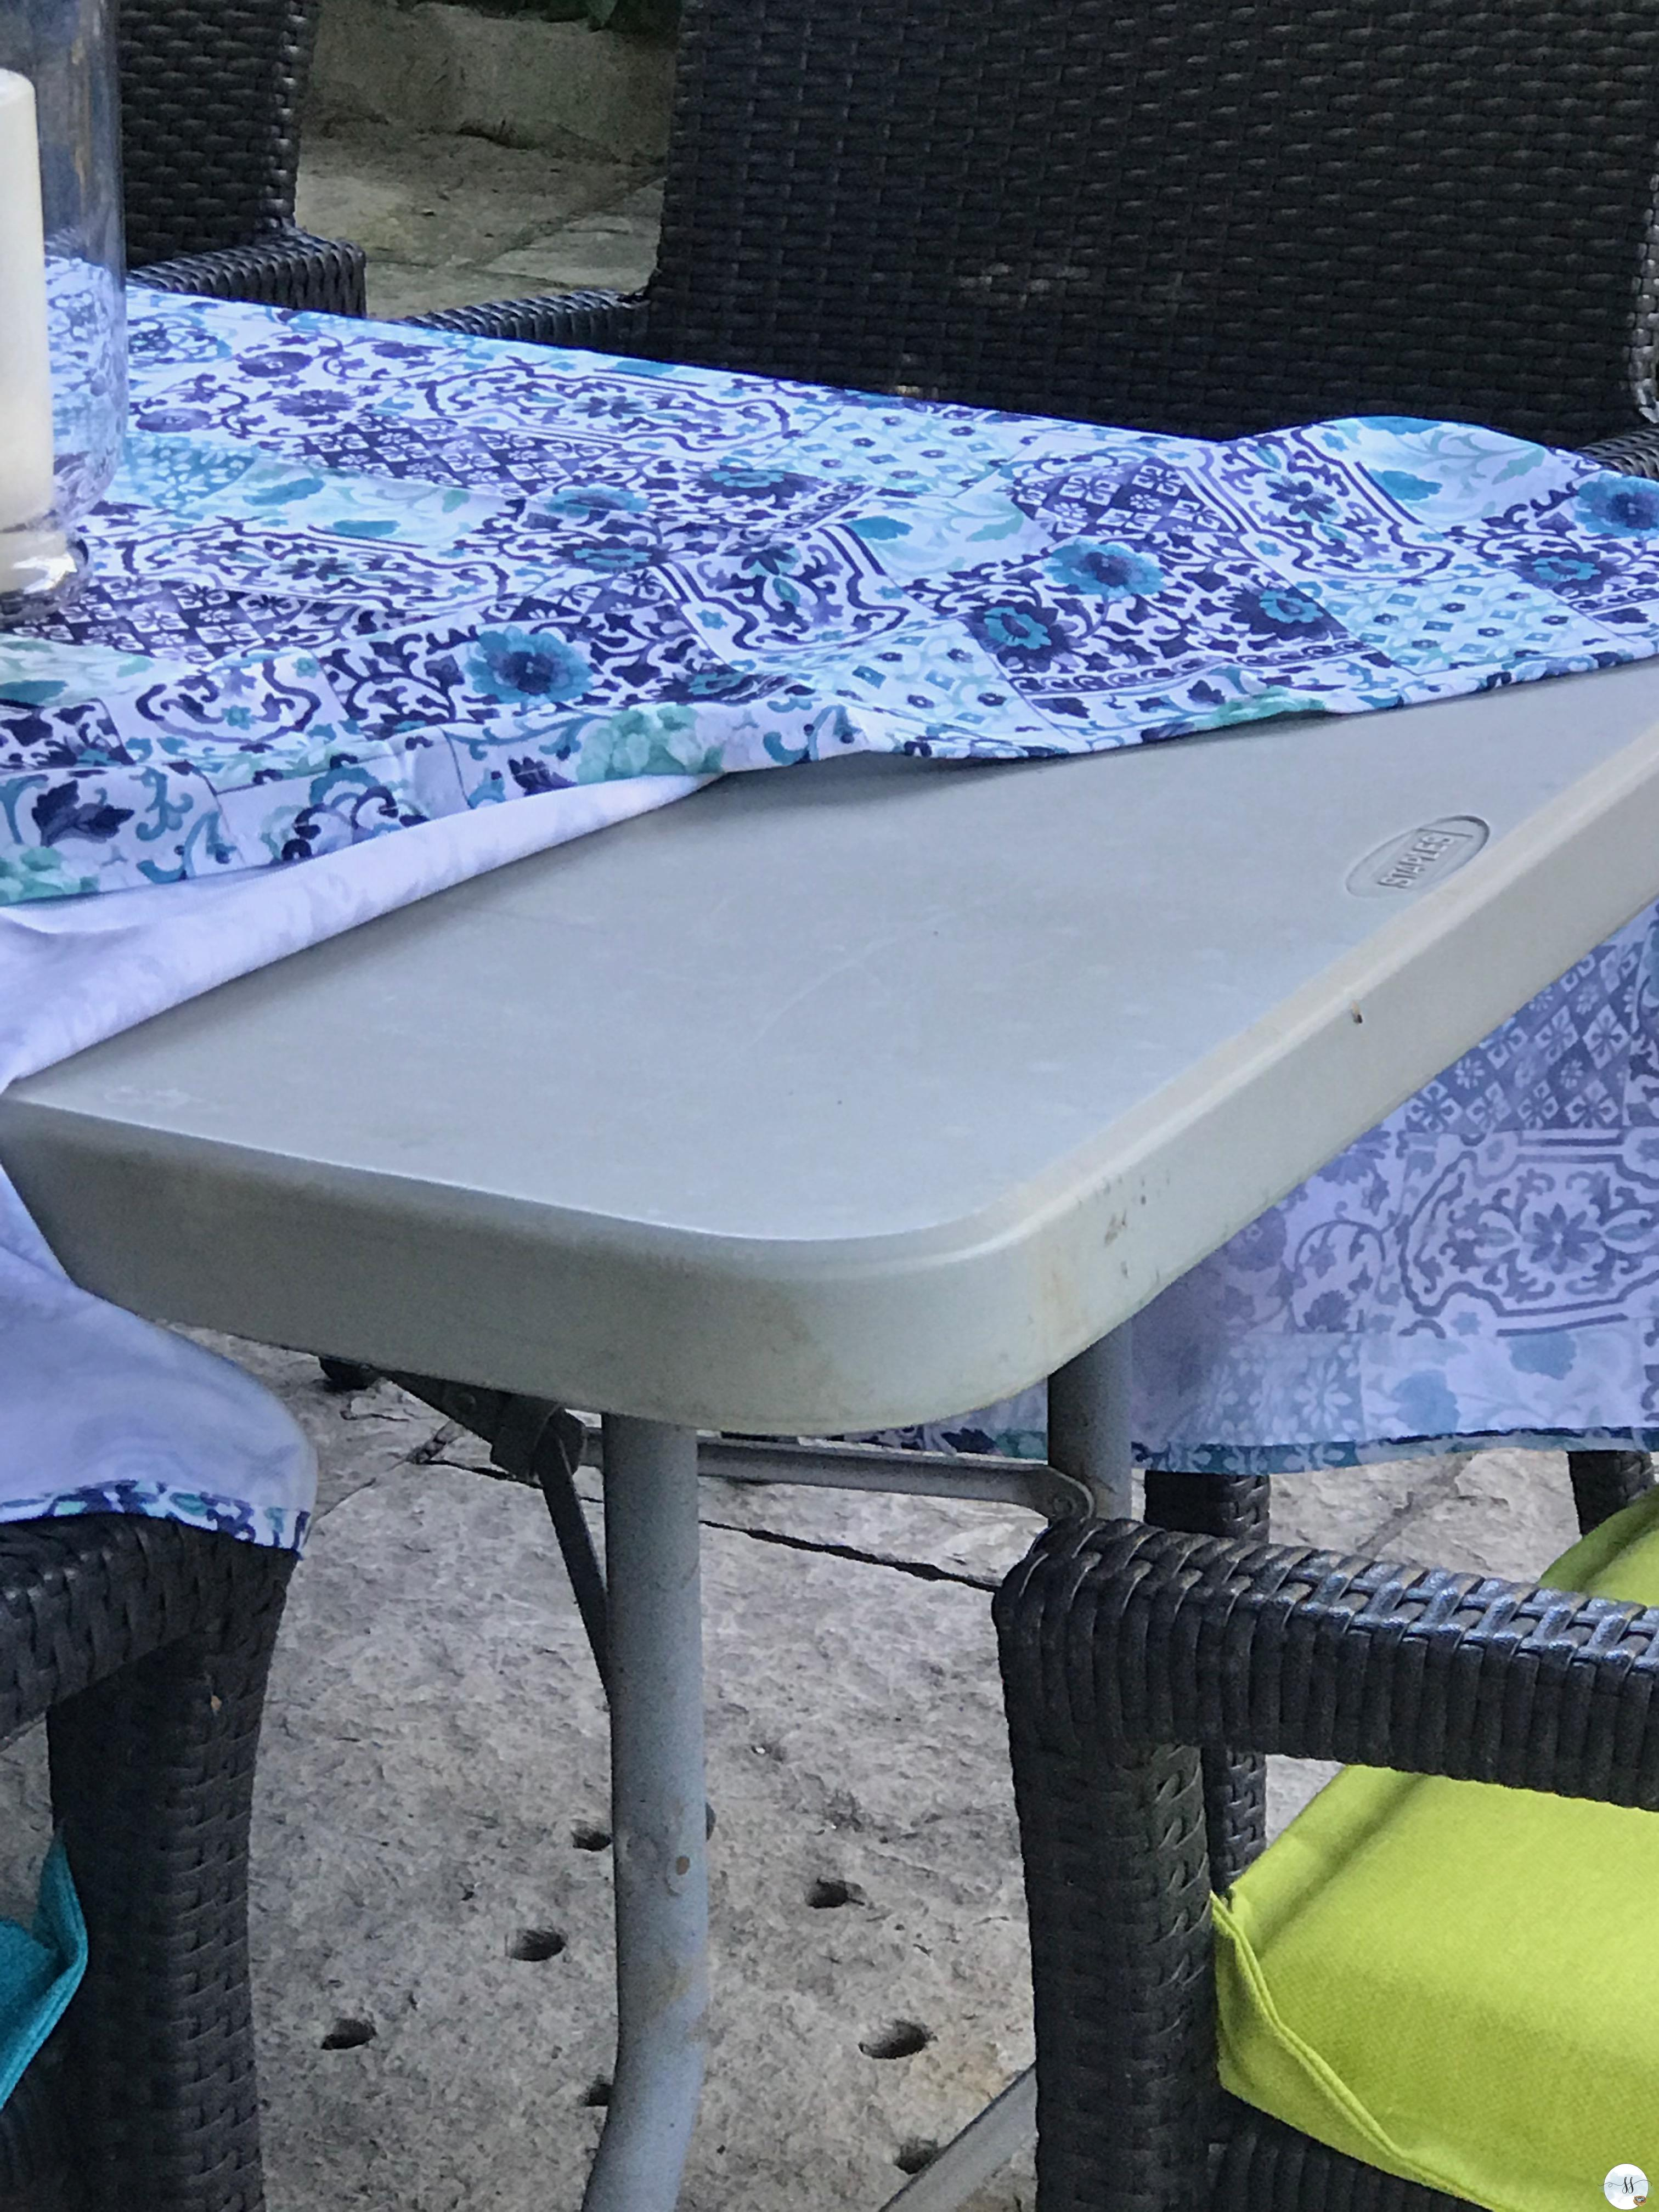 Folding table as an outdoor dining table works in a pinch.